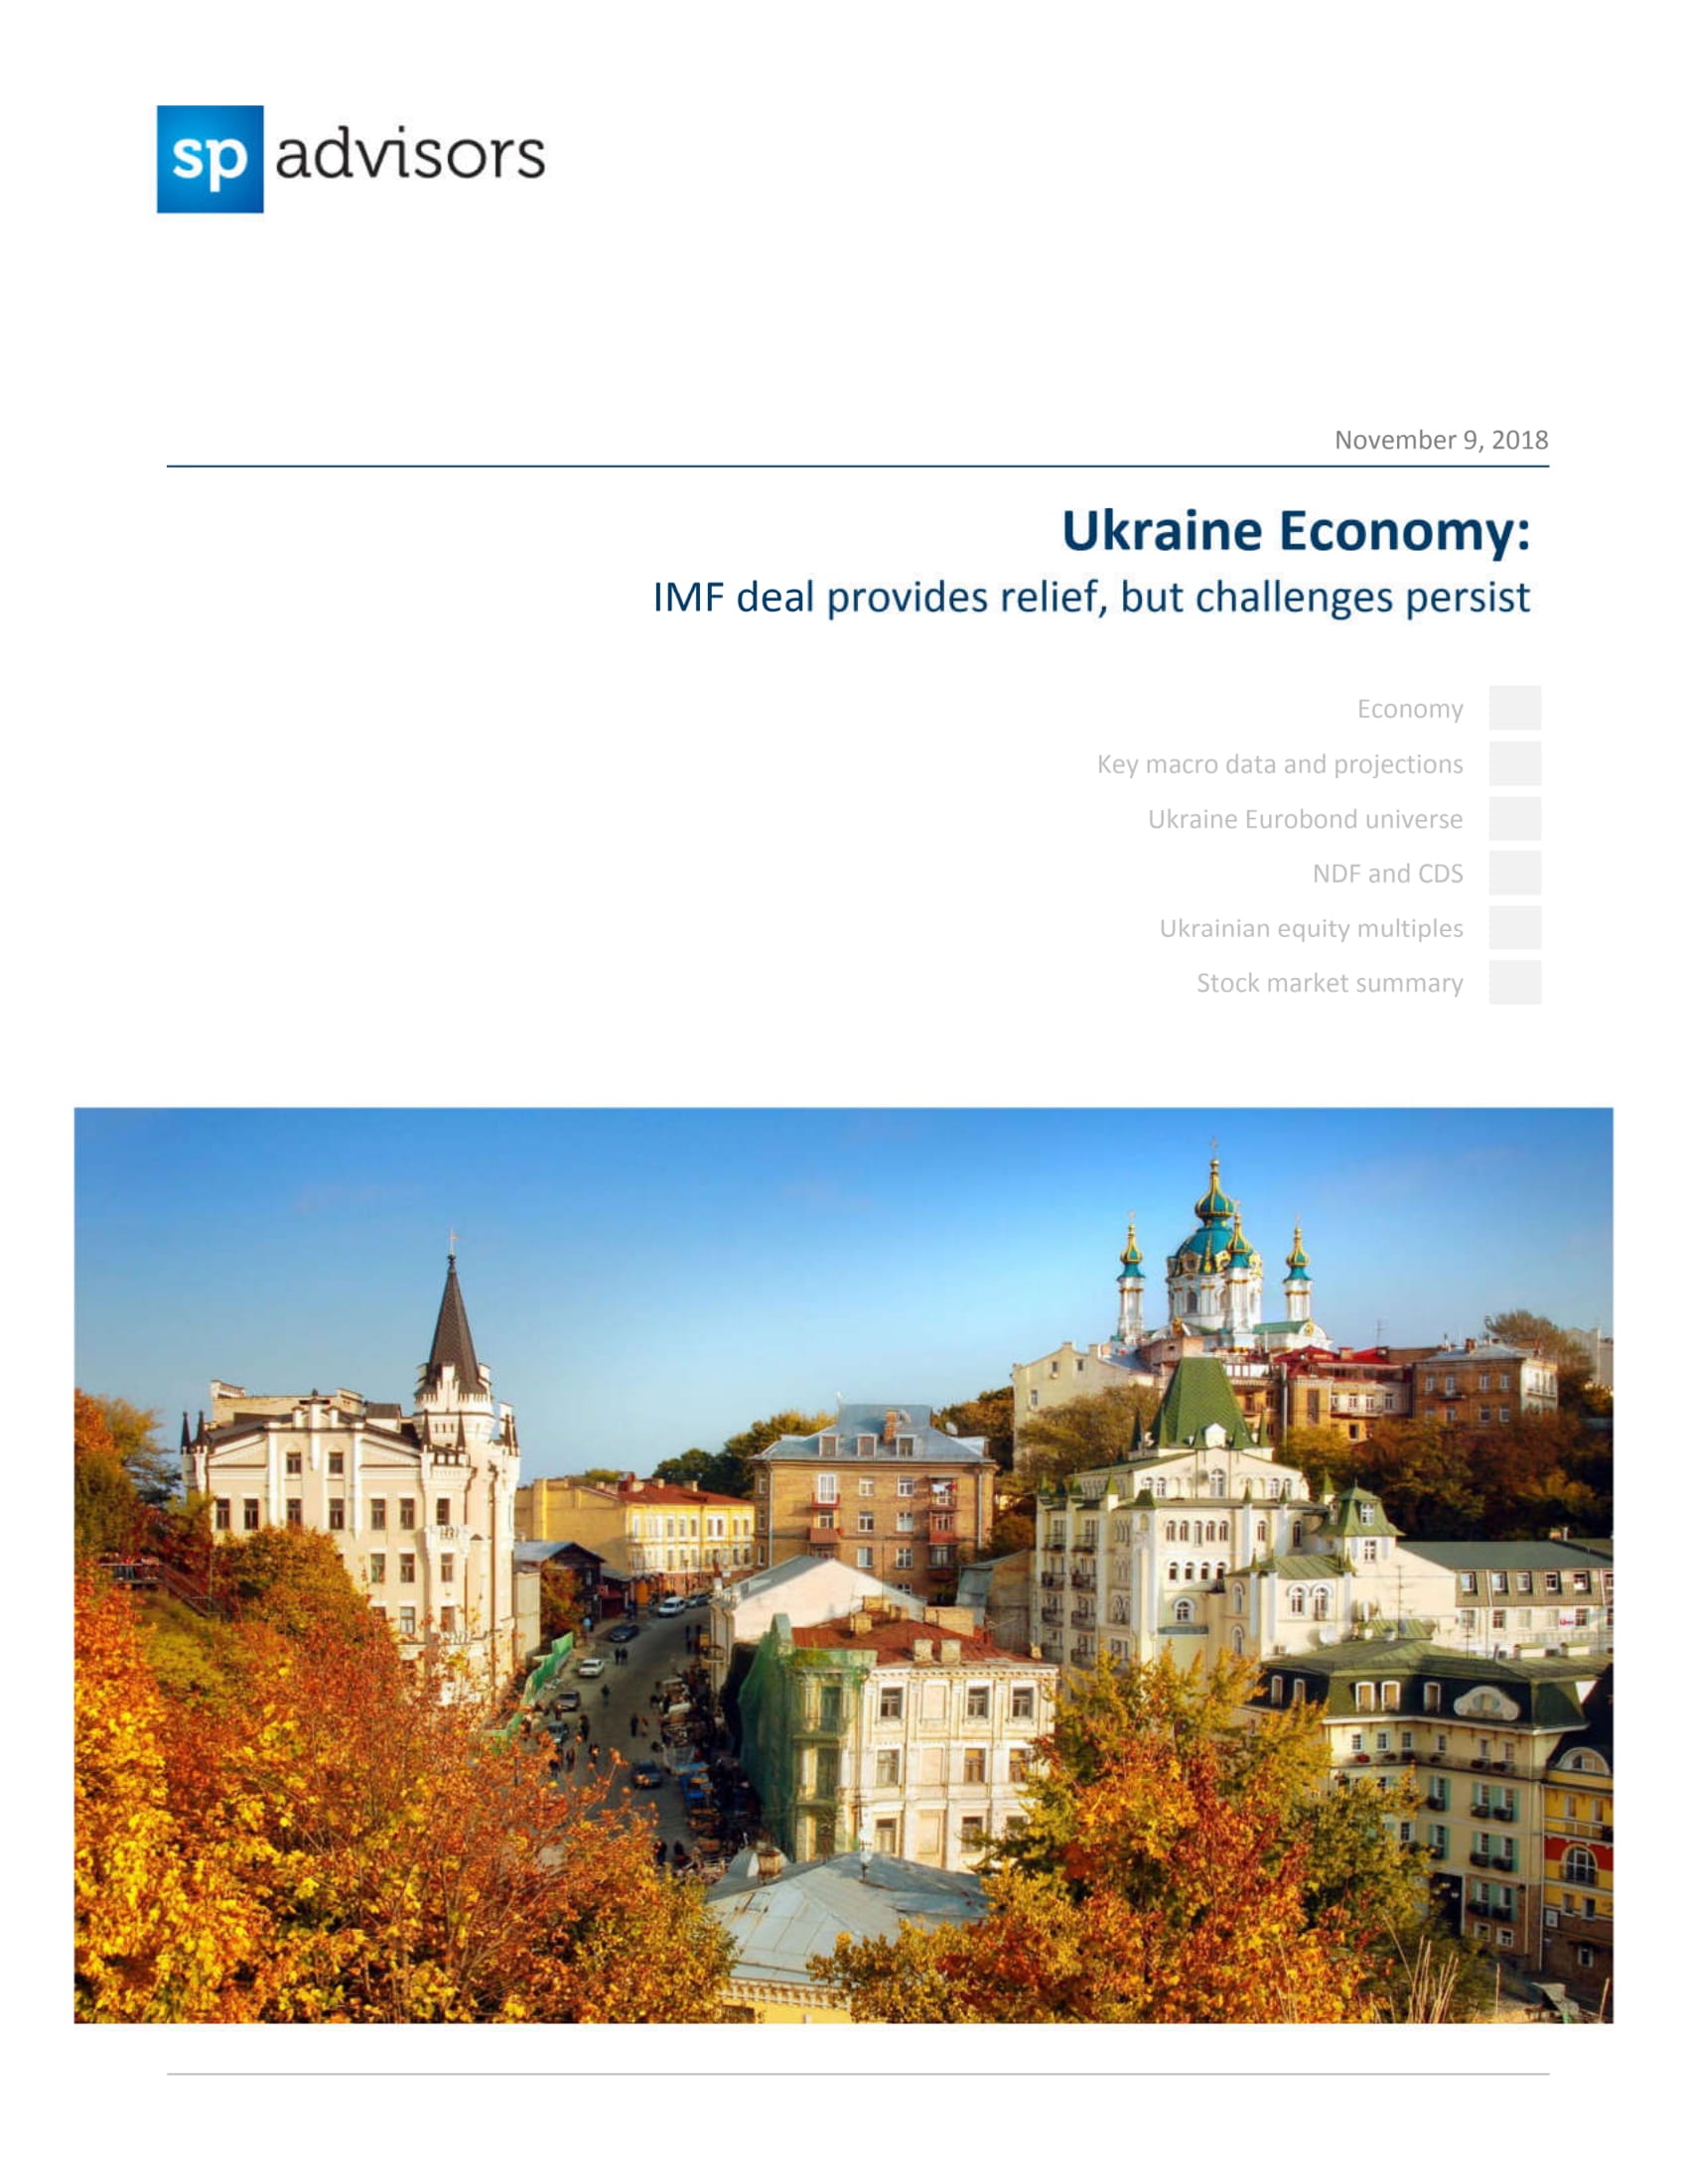 Ukraine Economy: IMF deal provides relief, but challenges persist